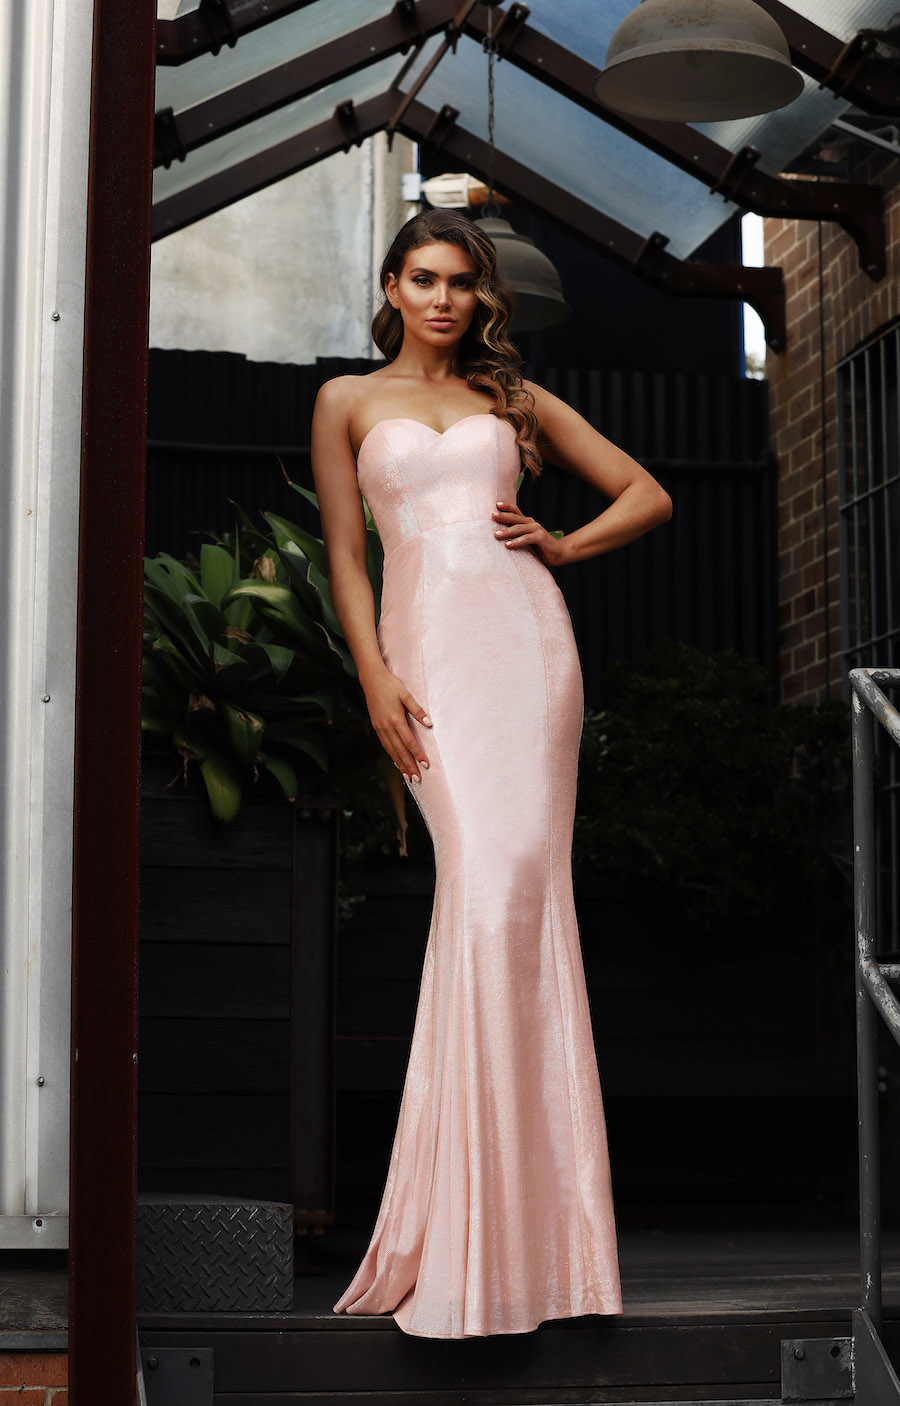 Strapless mermaid gown in shiny fabric with sweetheart neckline